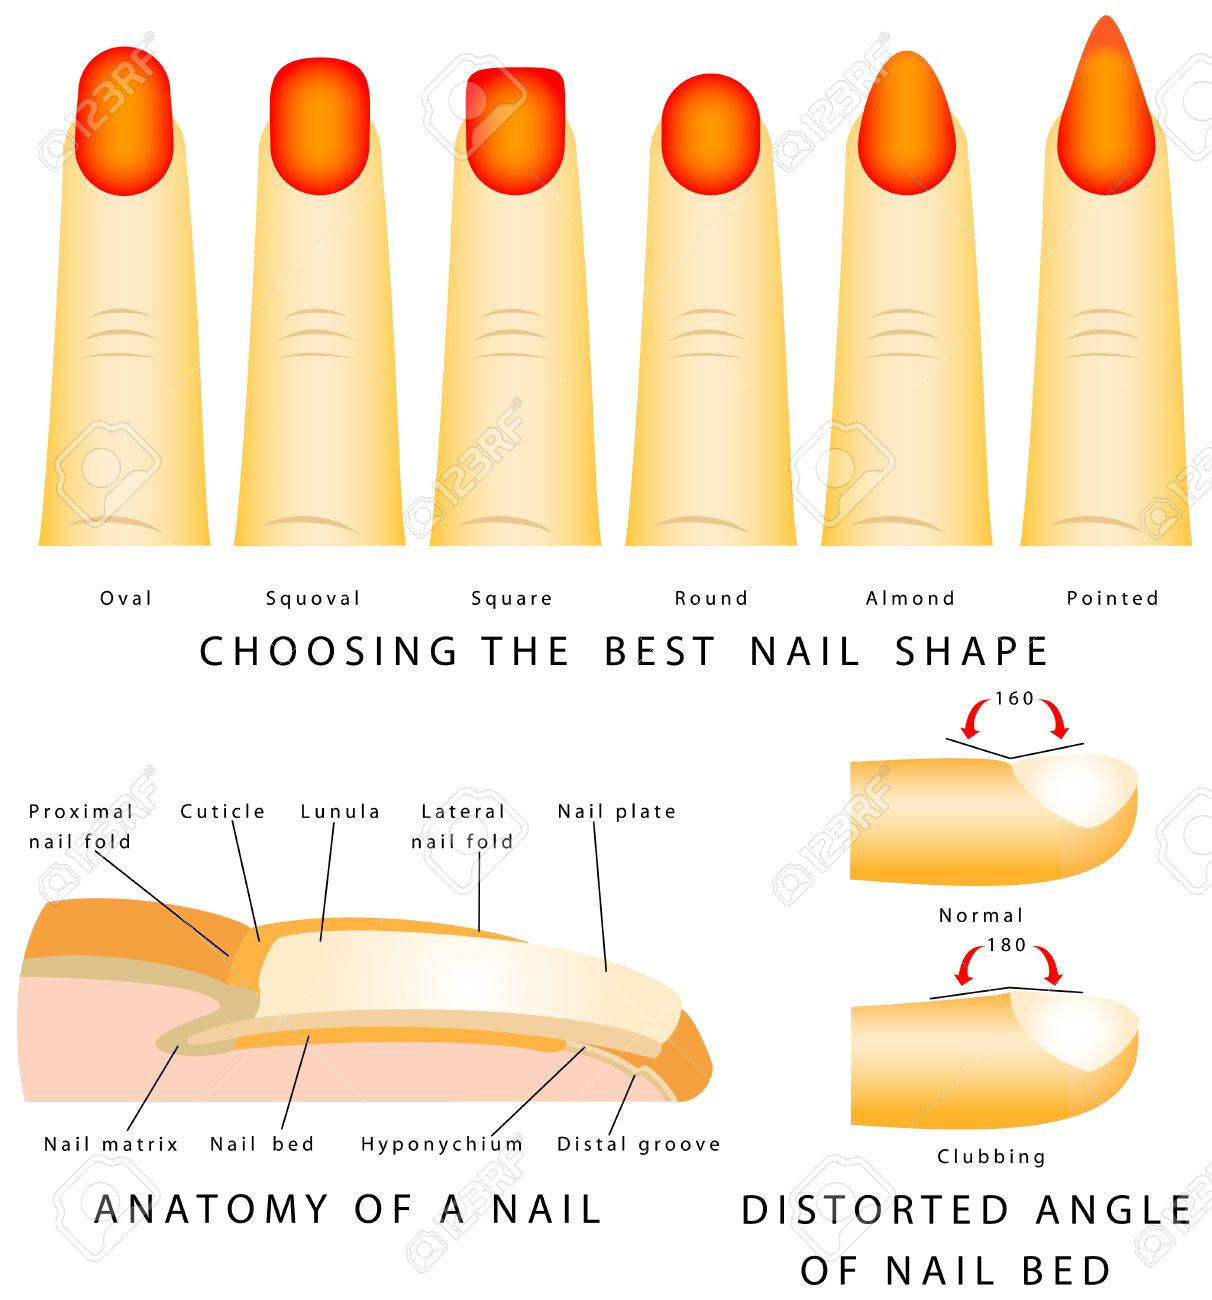 Nail Shape Different Nail Shapes Anatomy Of A Nail Distorted ...